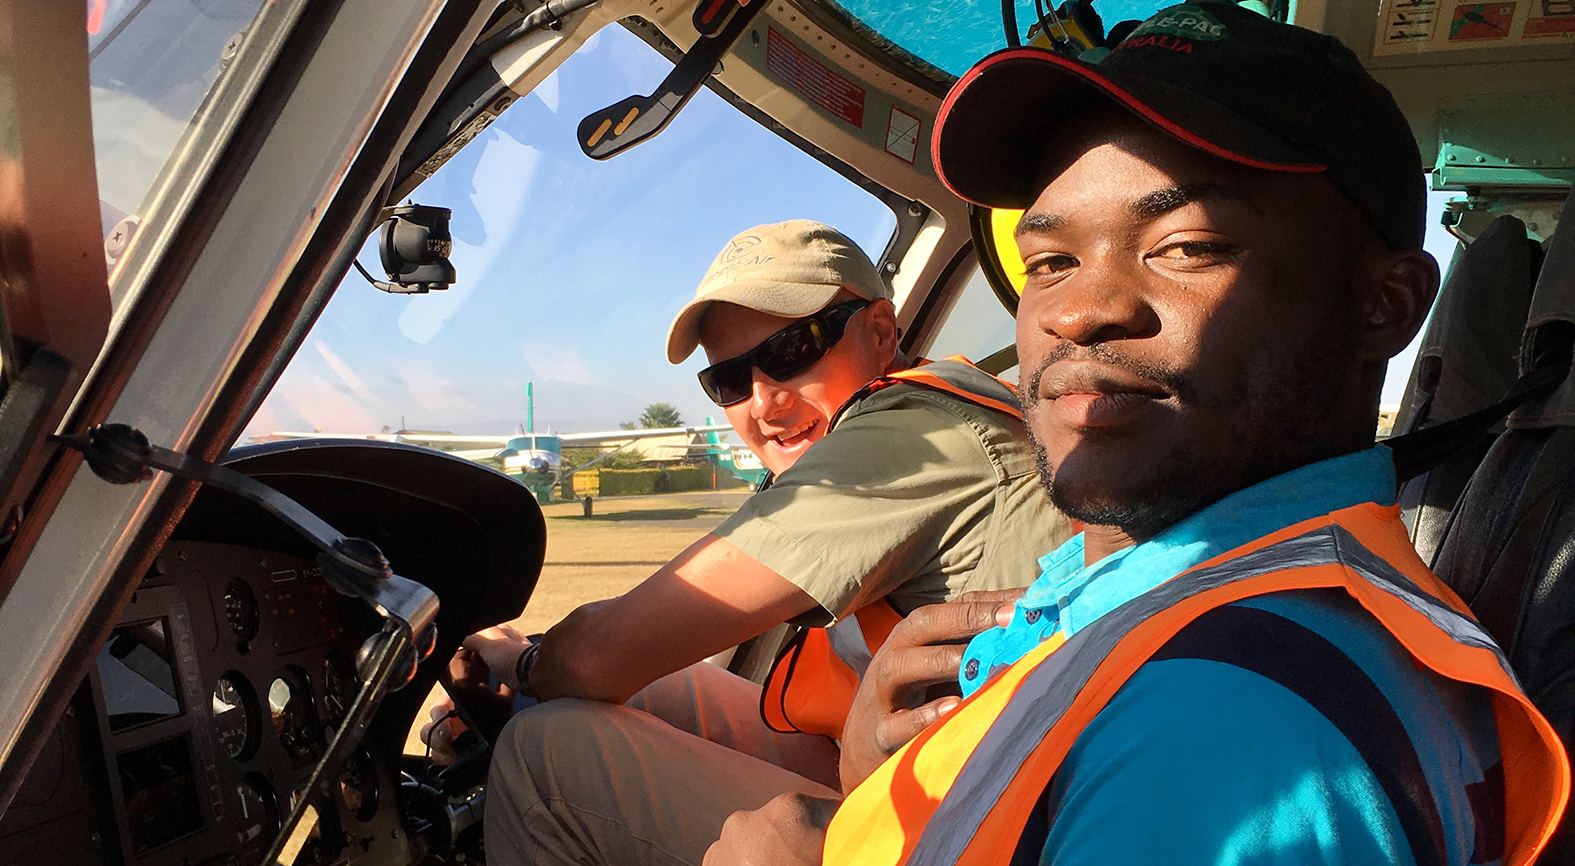 Helicopter Pilot Timmy and Engineer Cyprian